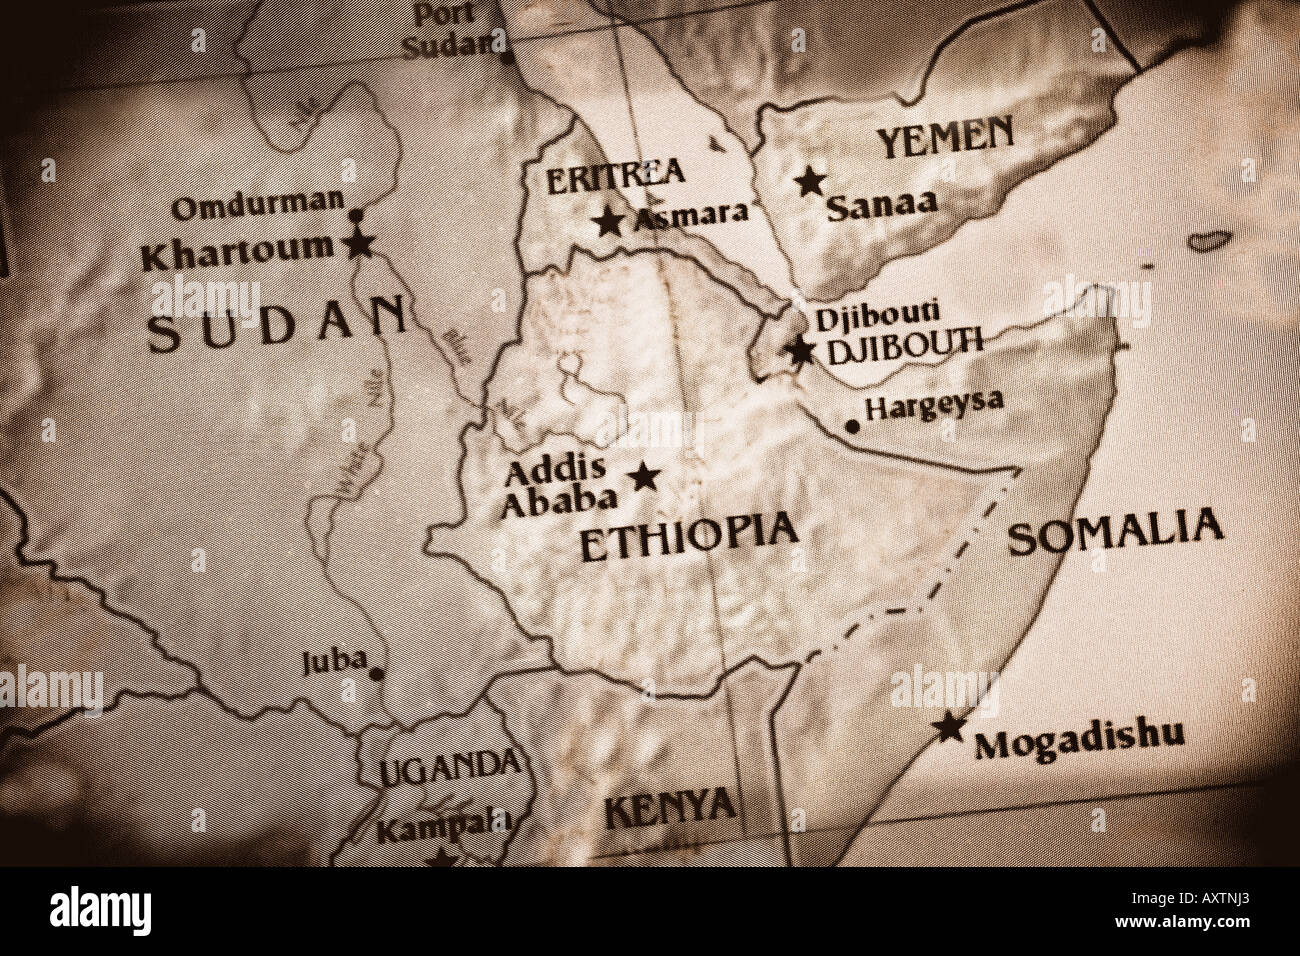 Current map showing the countries of sudan ethiopia kenya current map showing the countries of sudan ethiopia kenya somalia uganda and yemen in africa sciox Images